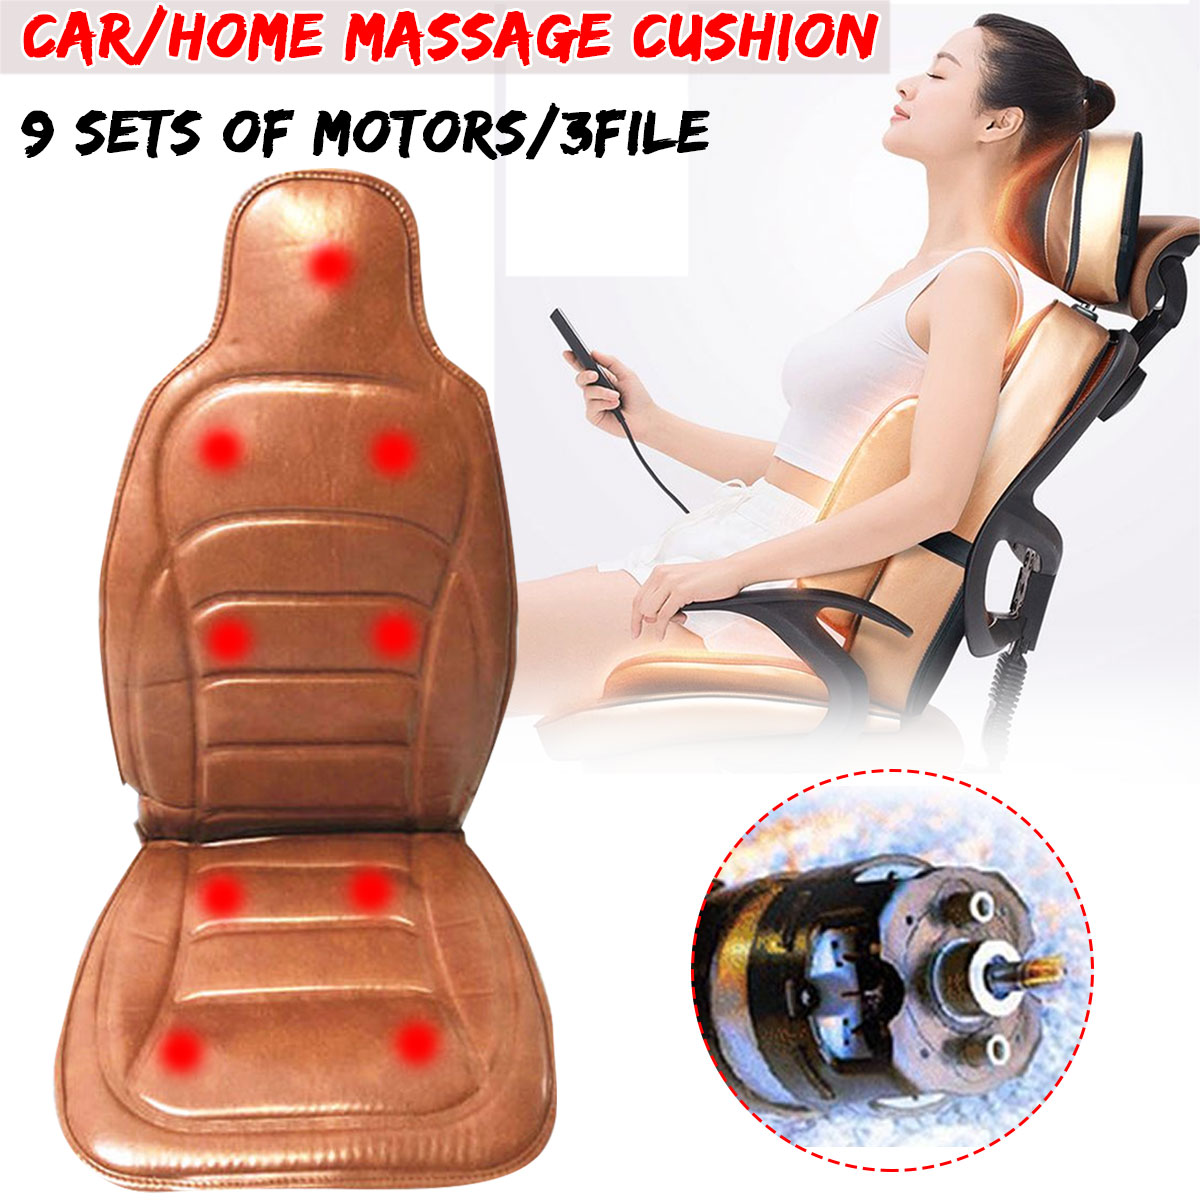 Electric Mulifunction Body Heated Massage Car Cushion Seat Home Office Car Seat Chair Massager Lumbar Back Neck Pad 3 File